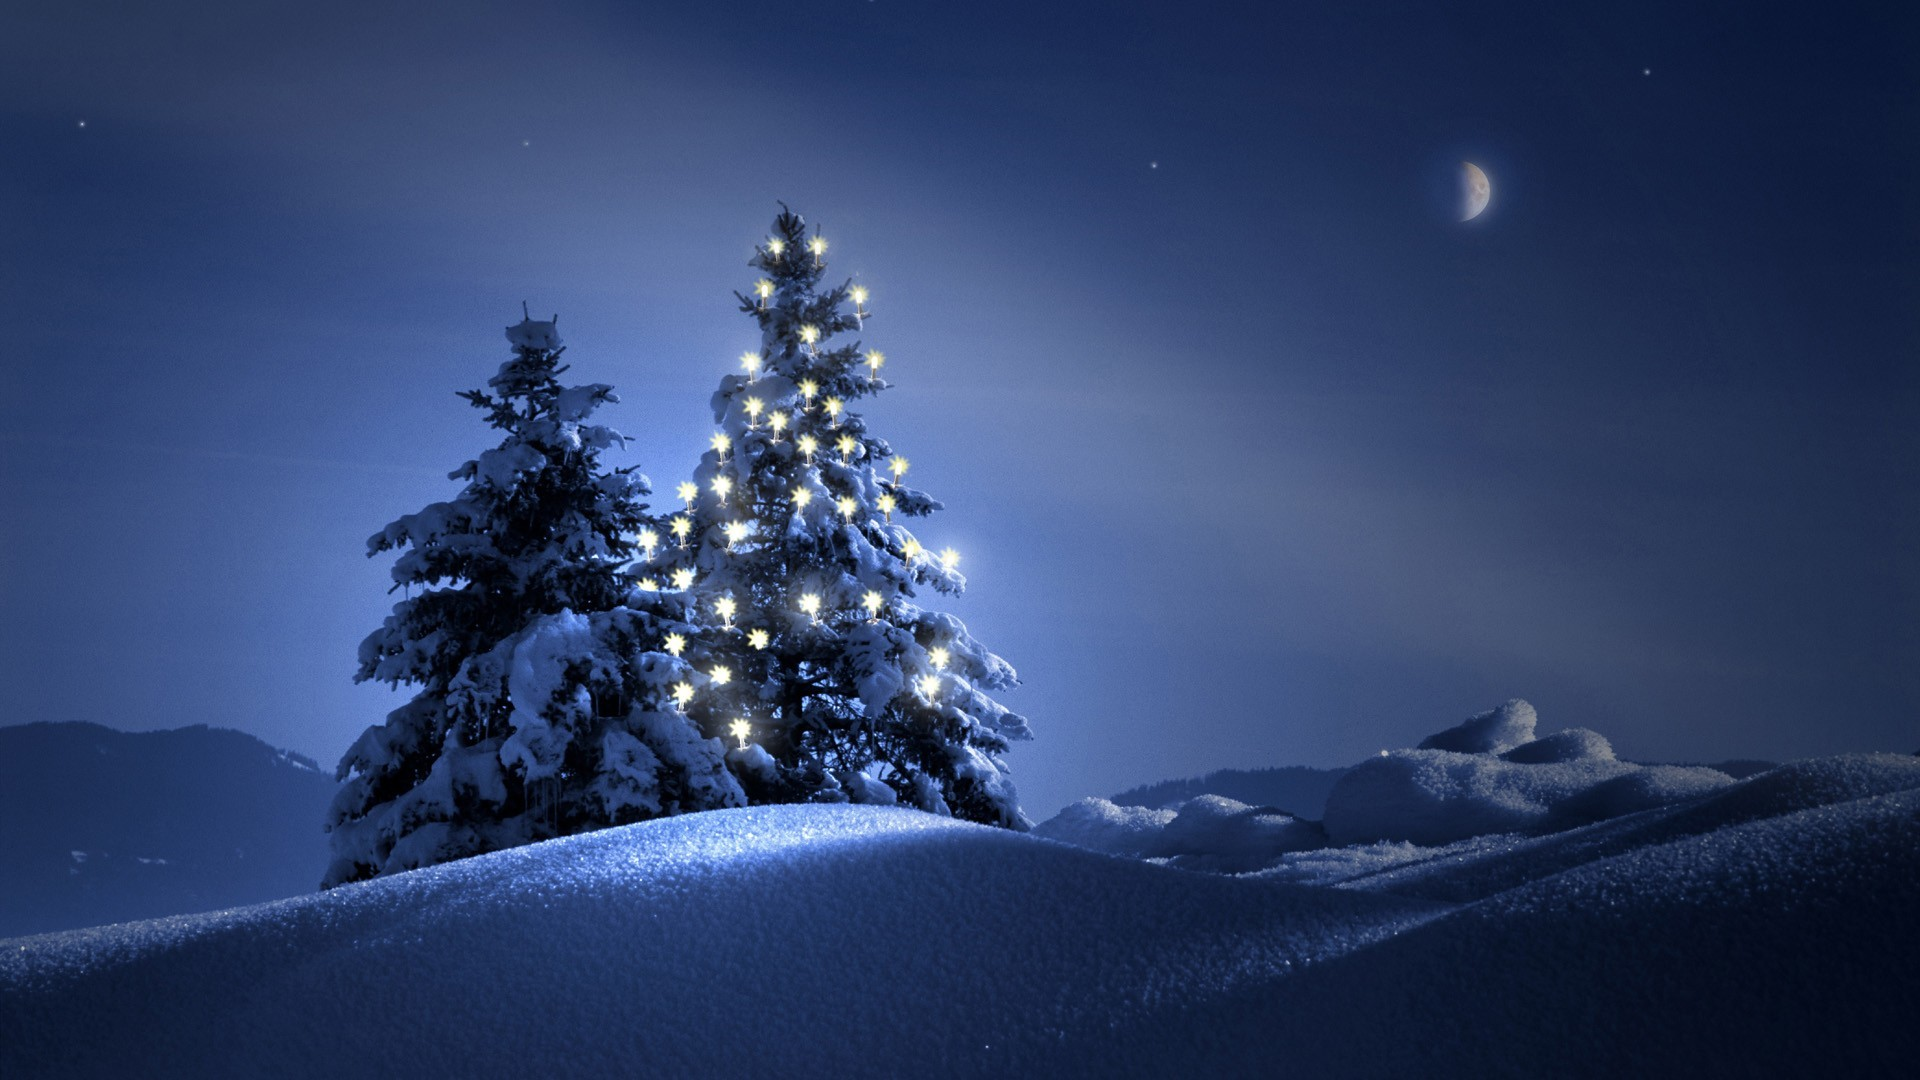 Res: 1920x1080, Christmas Tree On Snow Wallpaper Wide Wallpaper